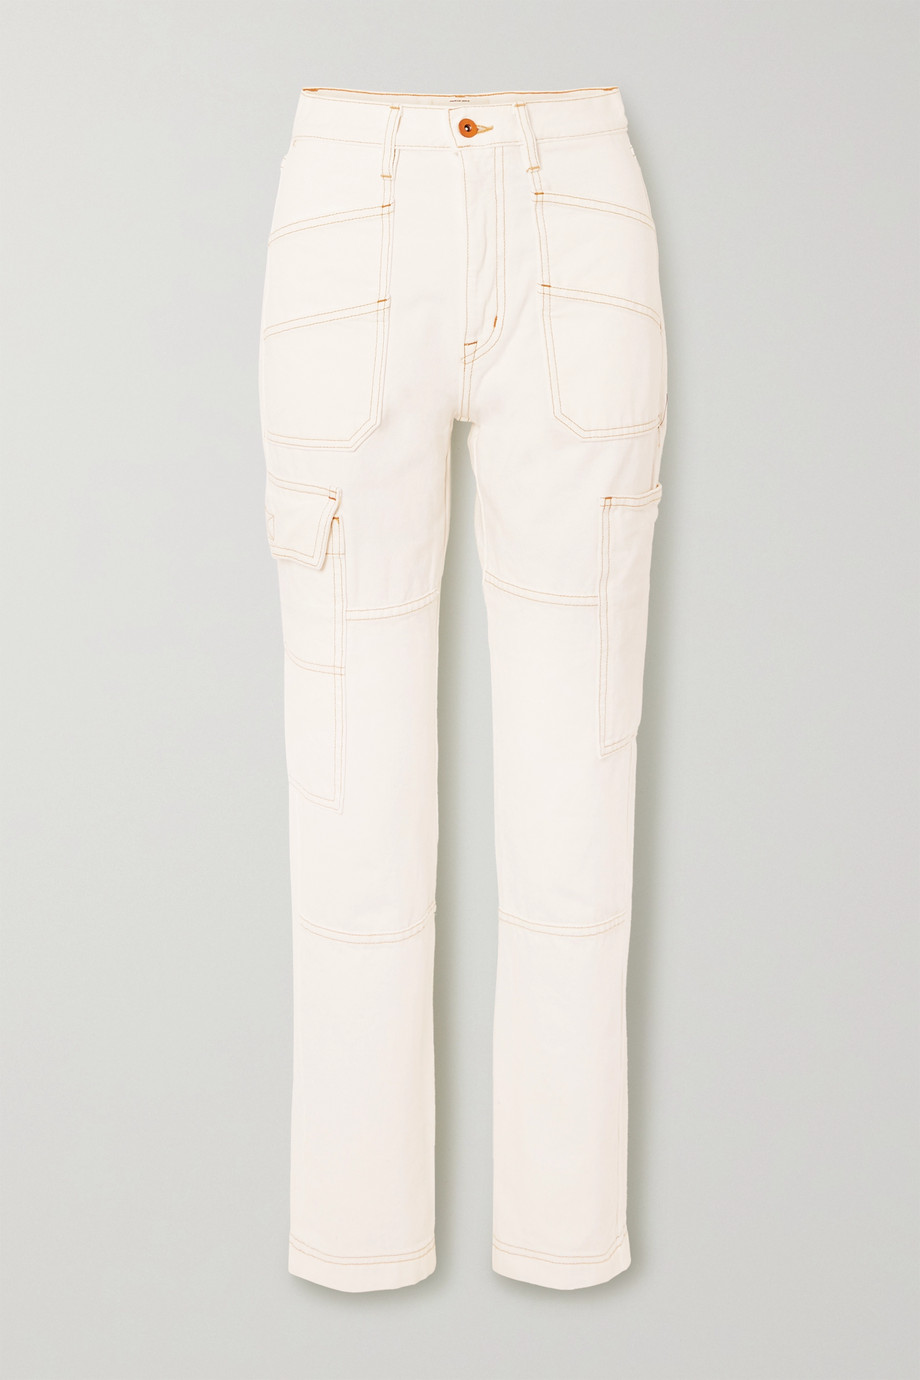 Savior high-rise straight-leg jeans by SLVRLAKE, available on net-a-porter.com for $126 Kendall Jenner Pants Exact Product